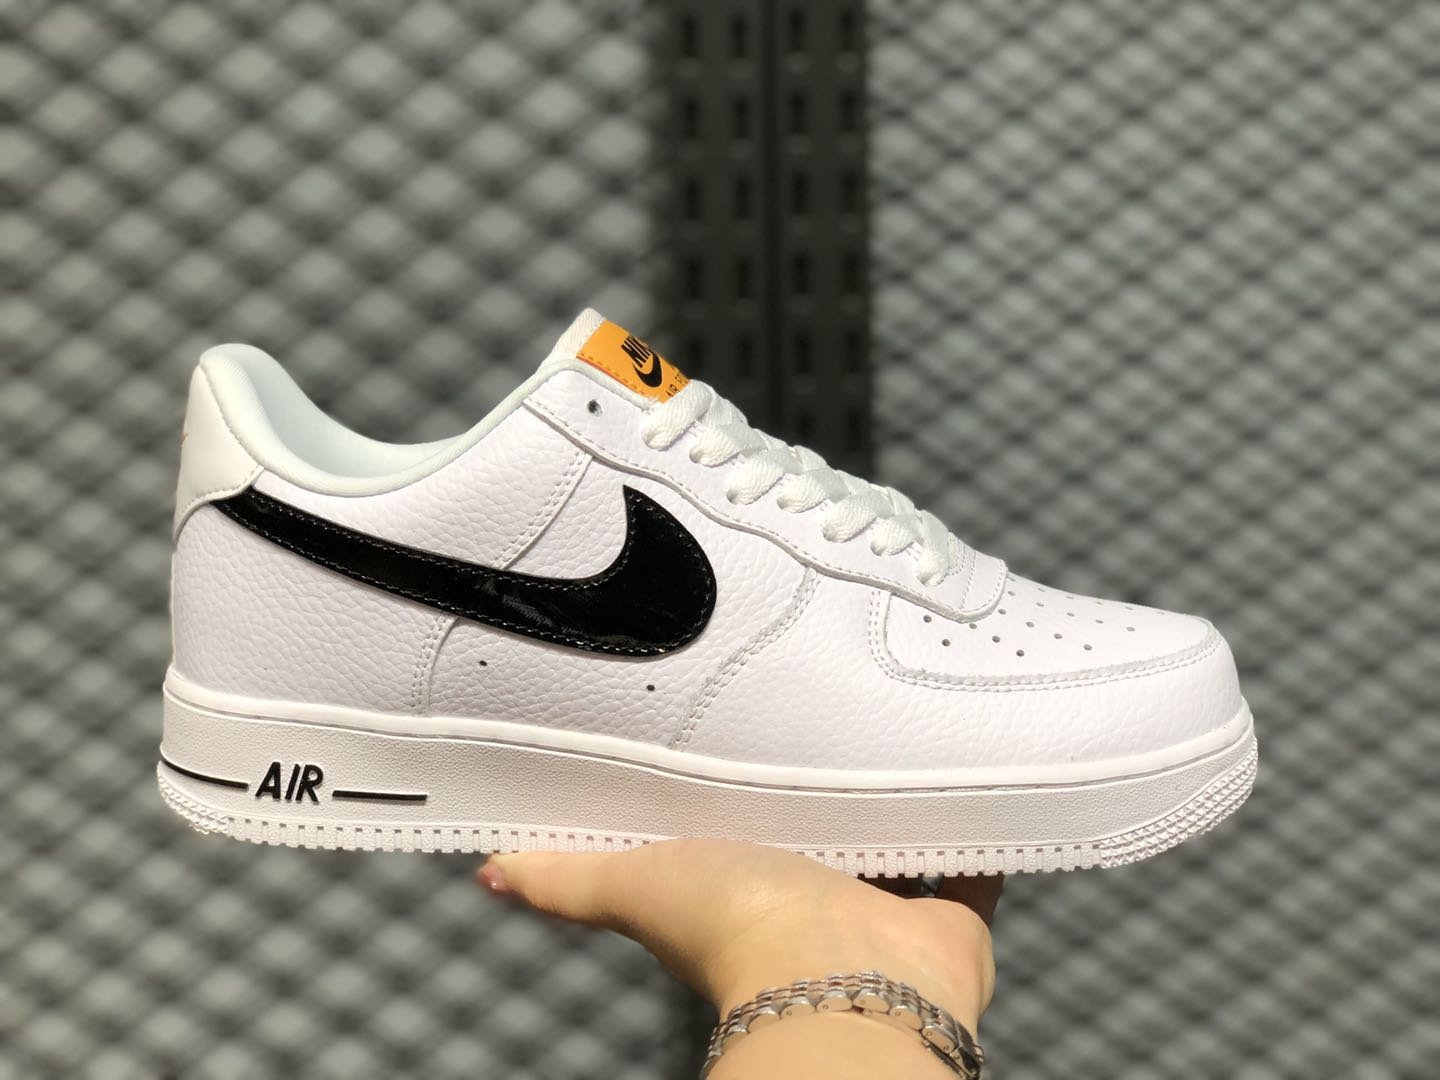 coser animal uno  Nike Air Force 1 Low White/Obsidian-Gum CI0057-100 Free Shipping | Sneakers  Big Sale